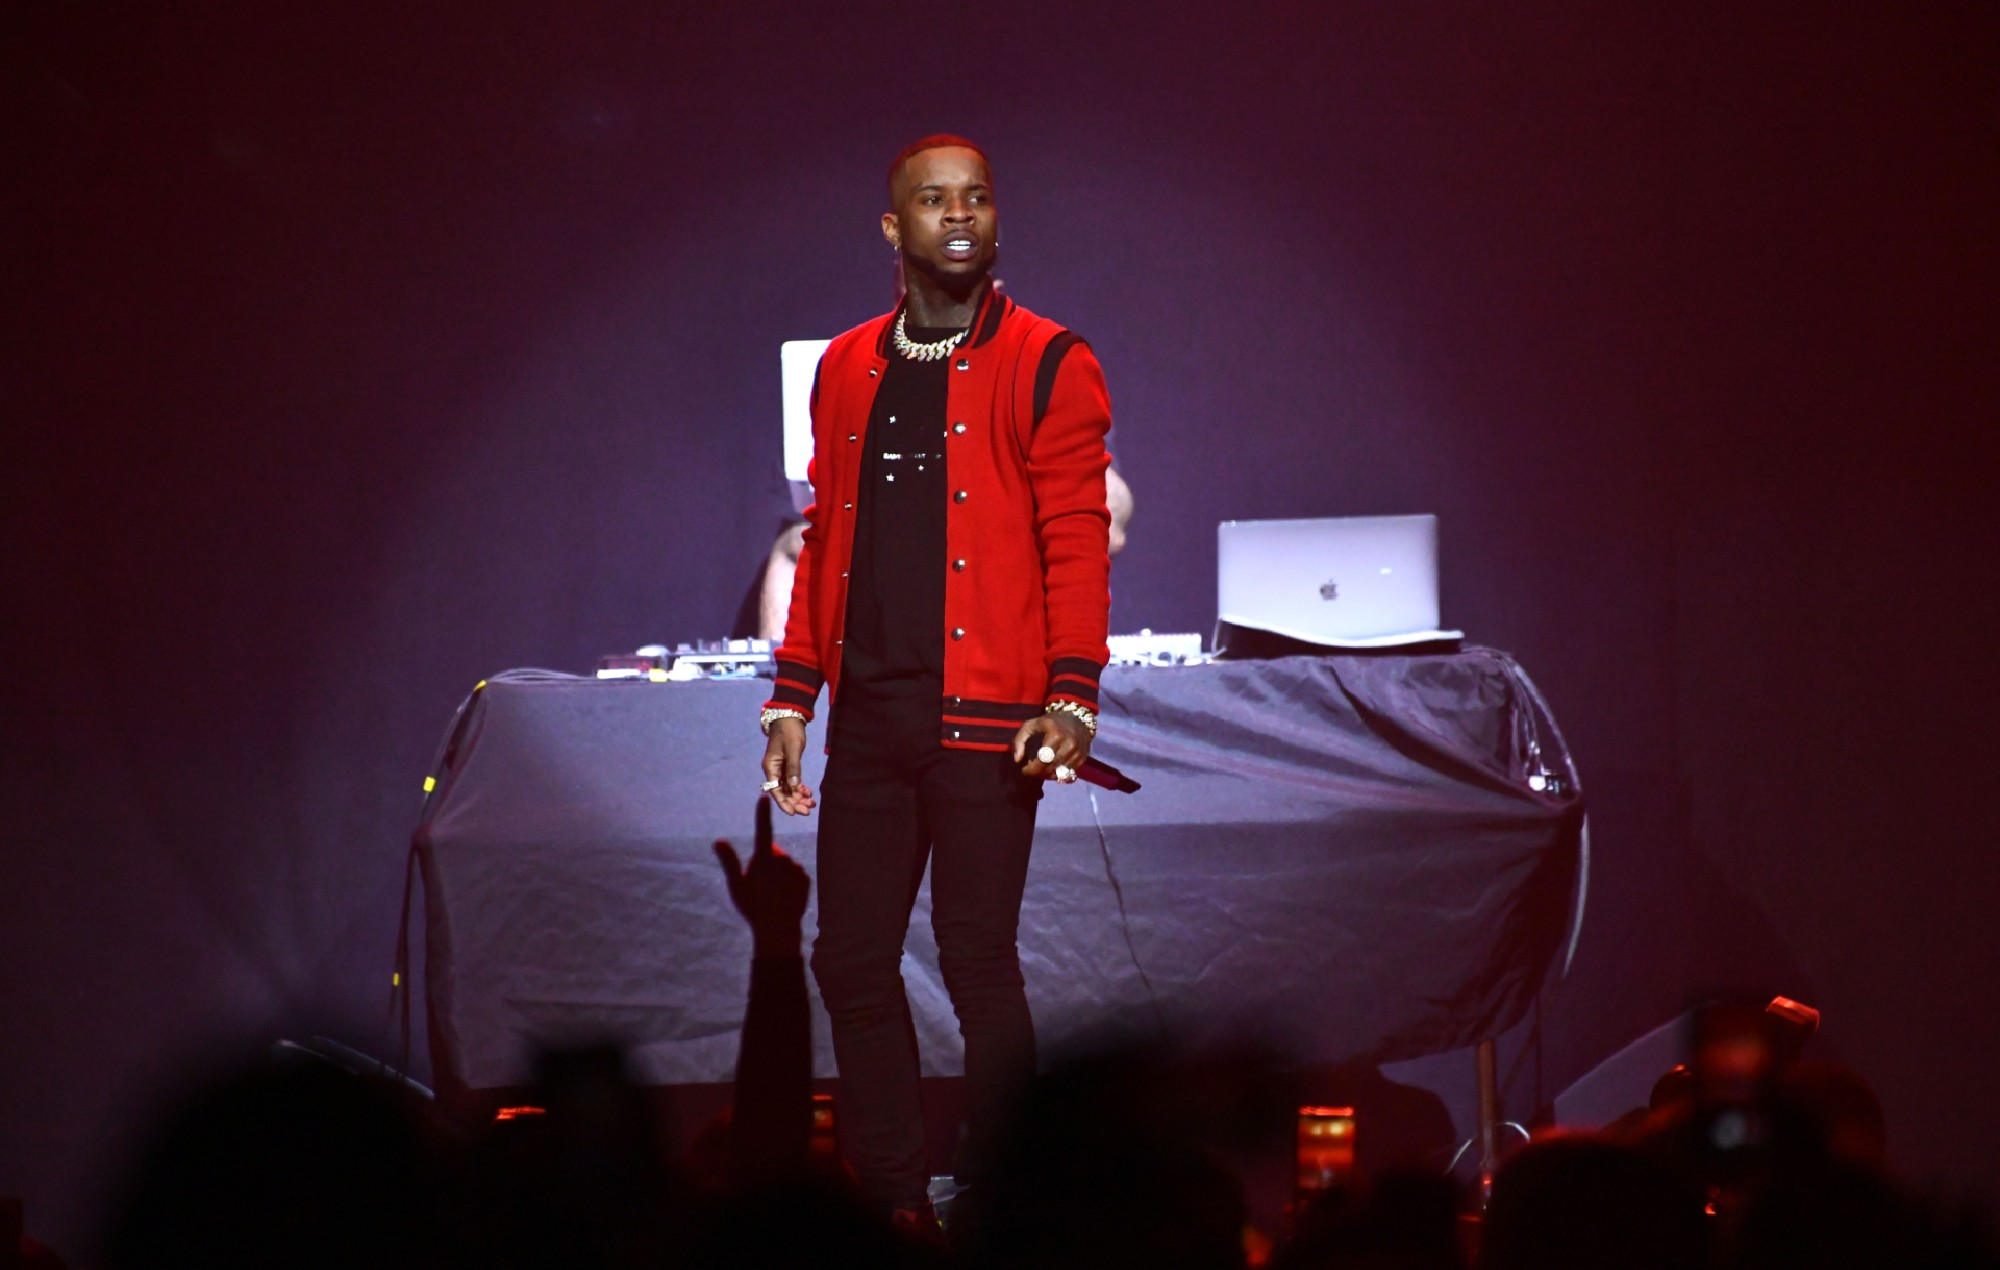 Tory Lanez shares videos for new tracks 'Staccato' and '392', Shop Ticket Snatchers